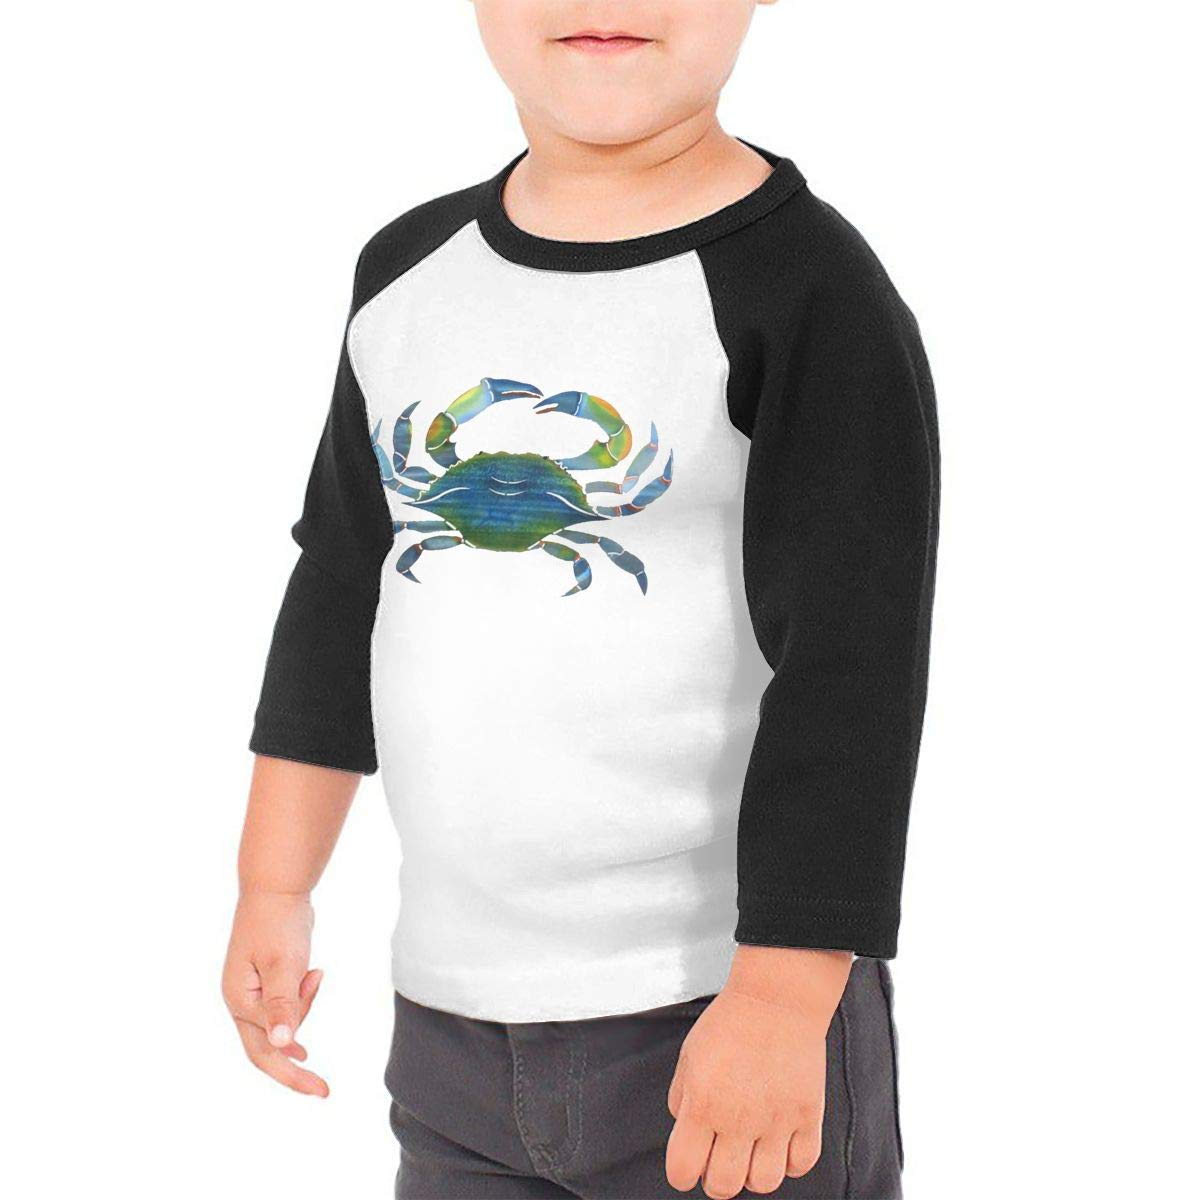 White and Black Cats in Love Unisex Toddler Baseball Jersey Contrast 3//4 Sleeves Tee